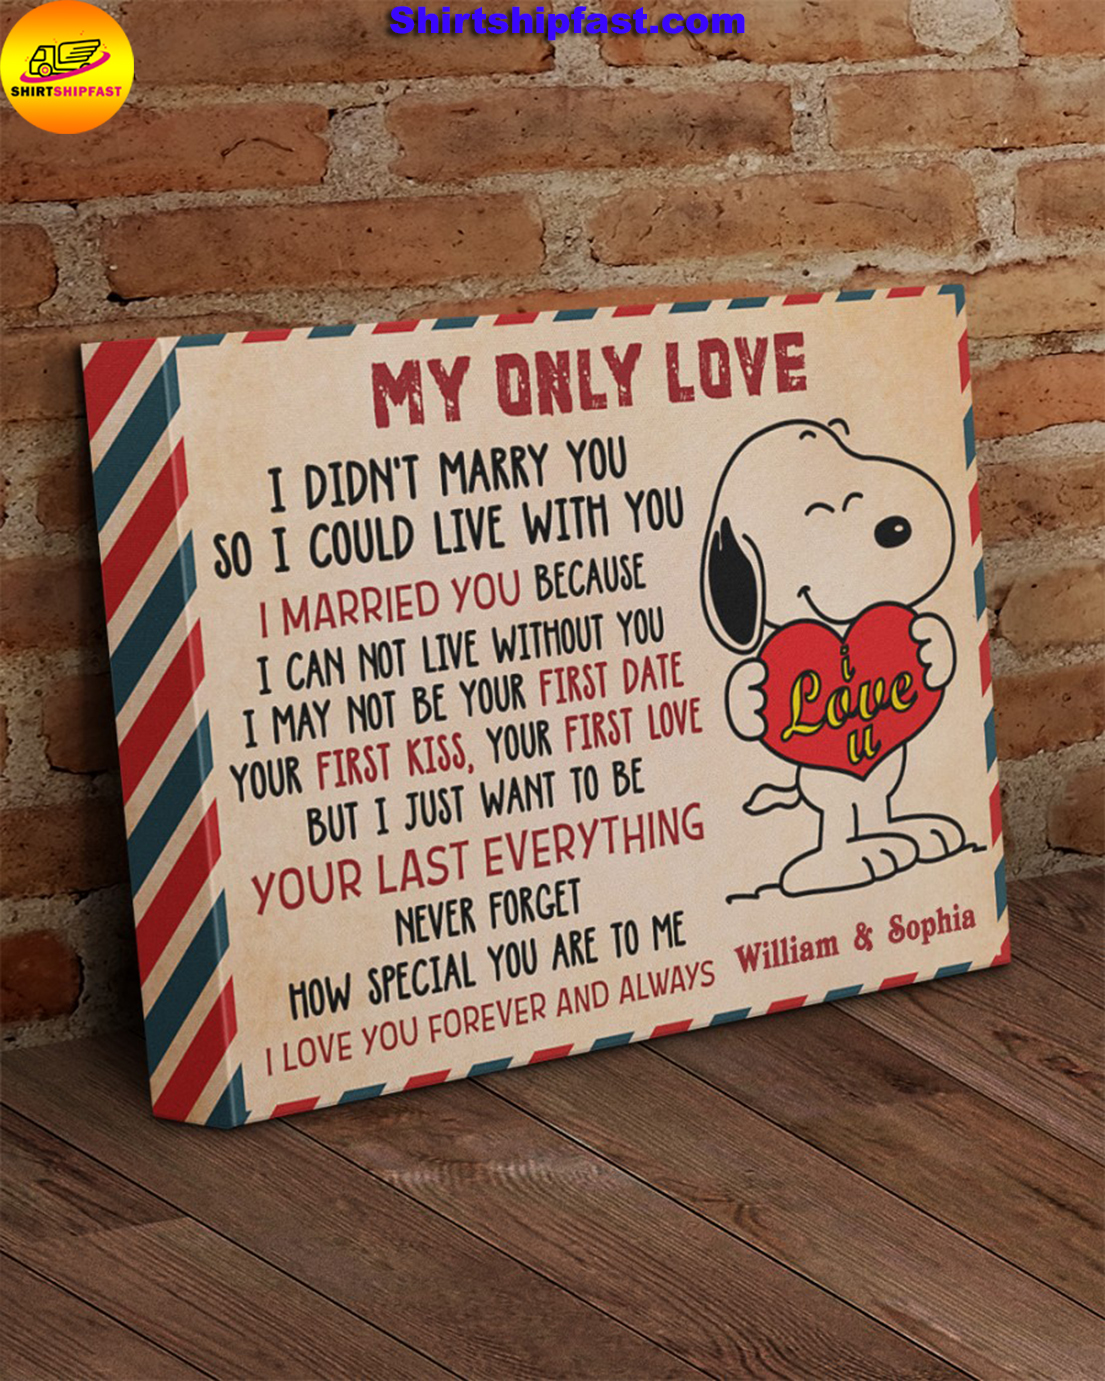 Personalized Snoopy My only love I did'nt marry you so I could live with you canvas - Picture 1